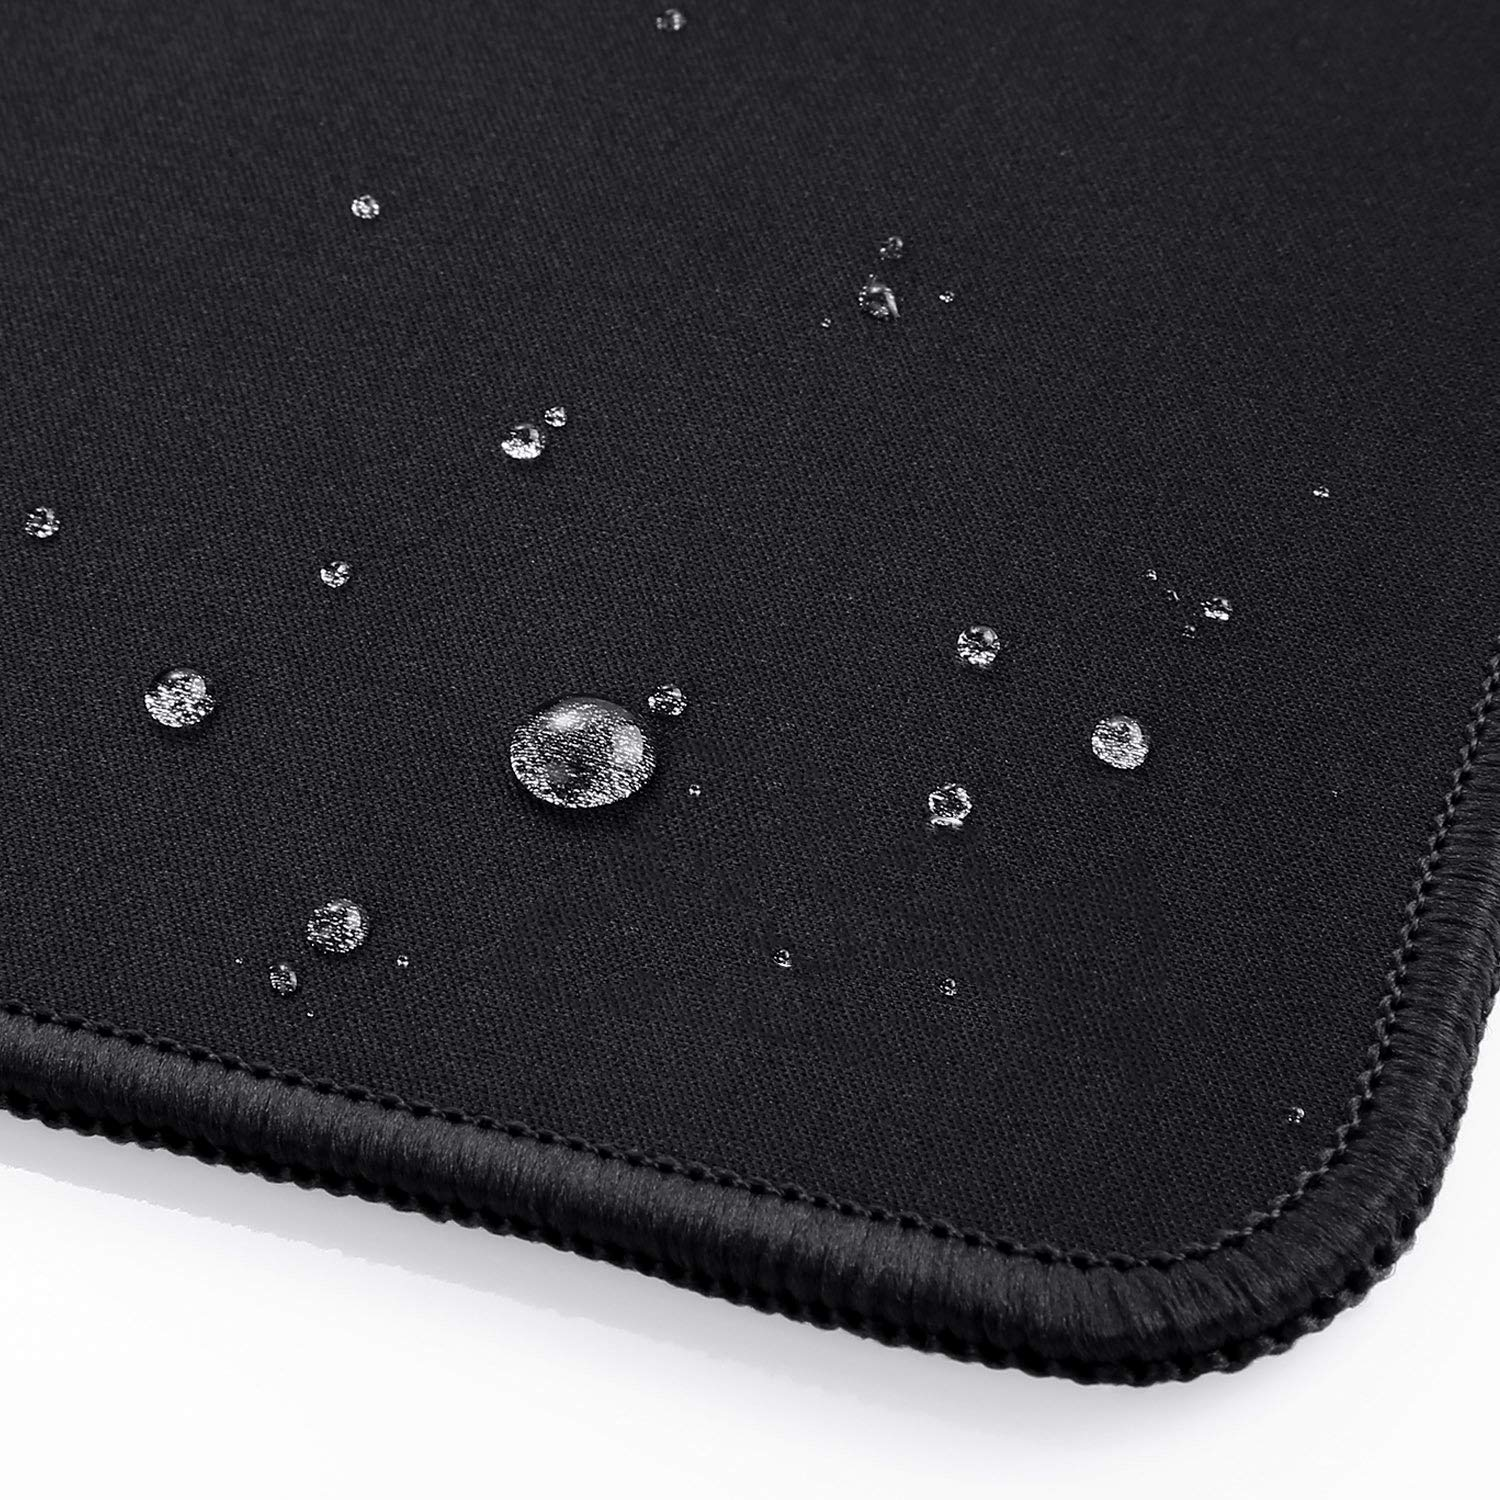 Jelly Comb XXL Large 855x580x4mm Dimension PC and Laptop Black Non-slip Rubber Base Gaming Mouse Mat Special Textured Surface Desktop Mouse Pad for Computer